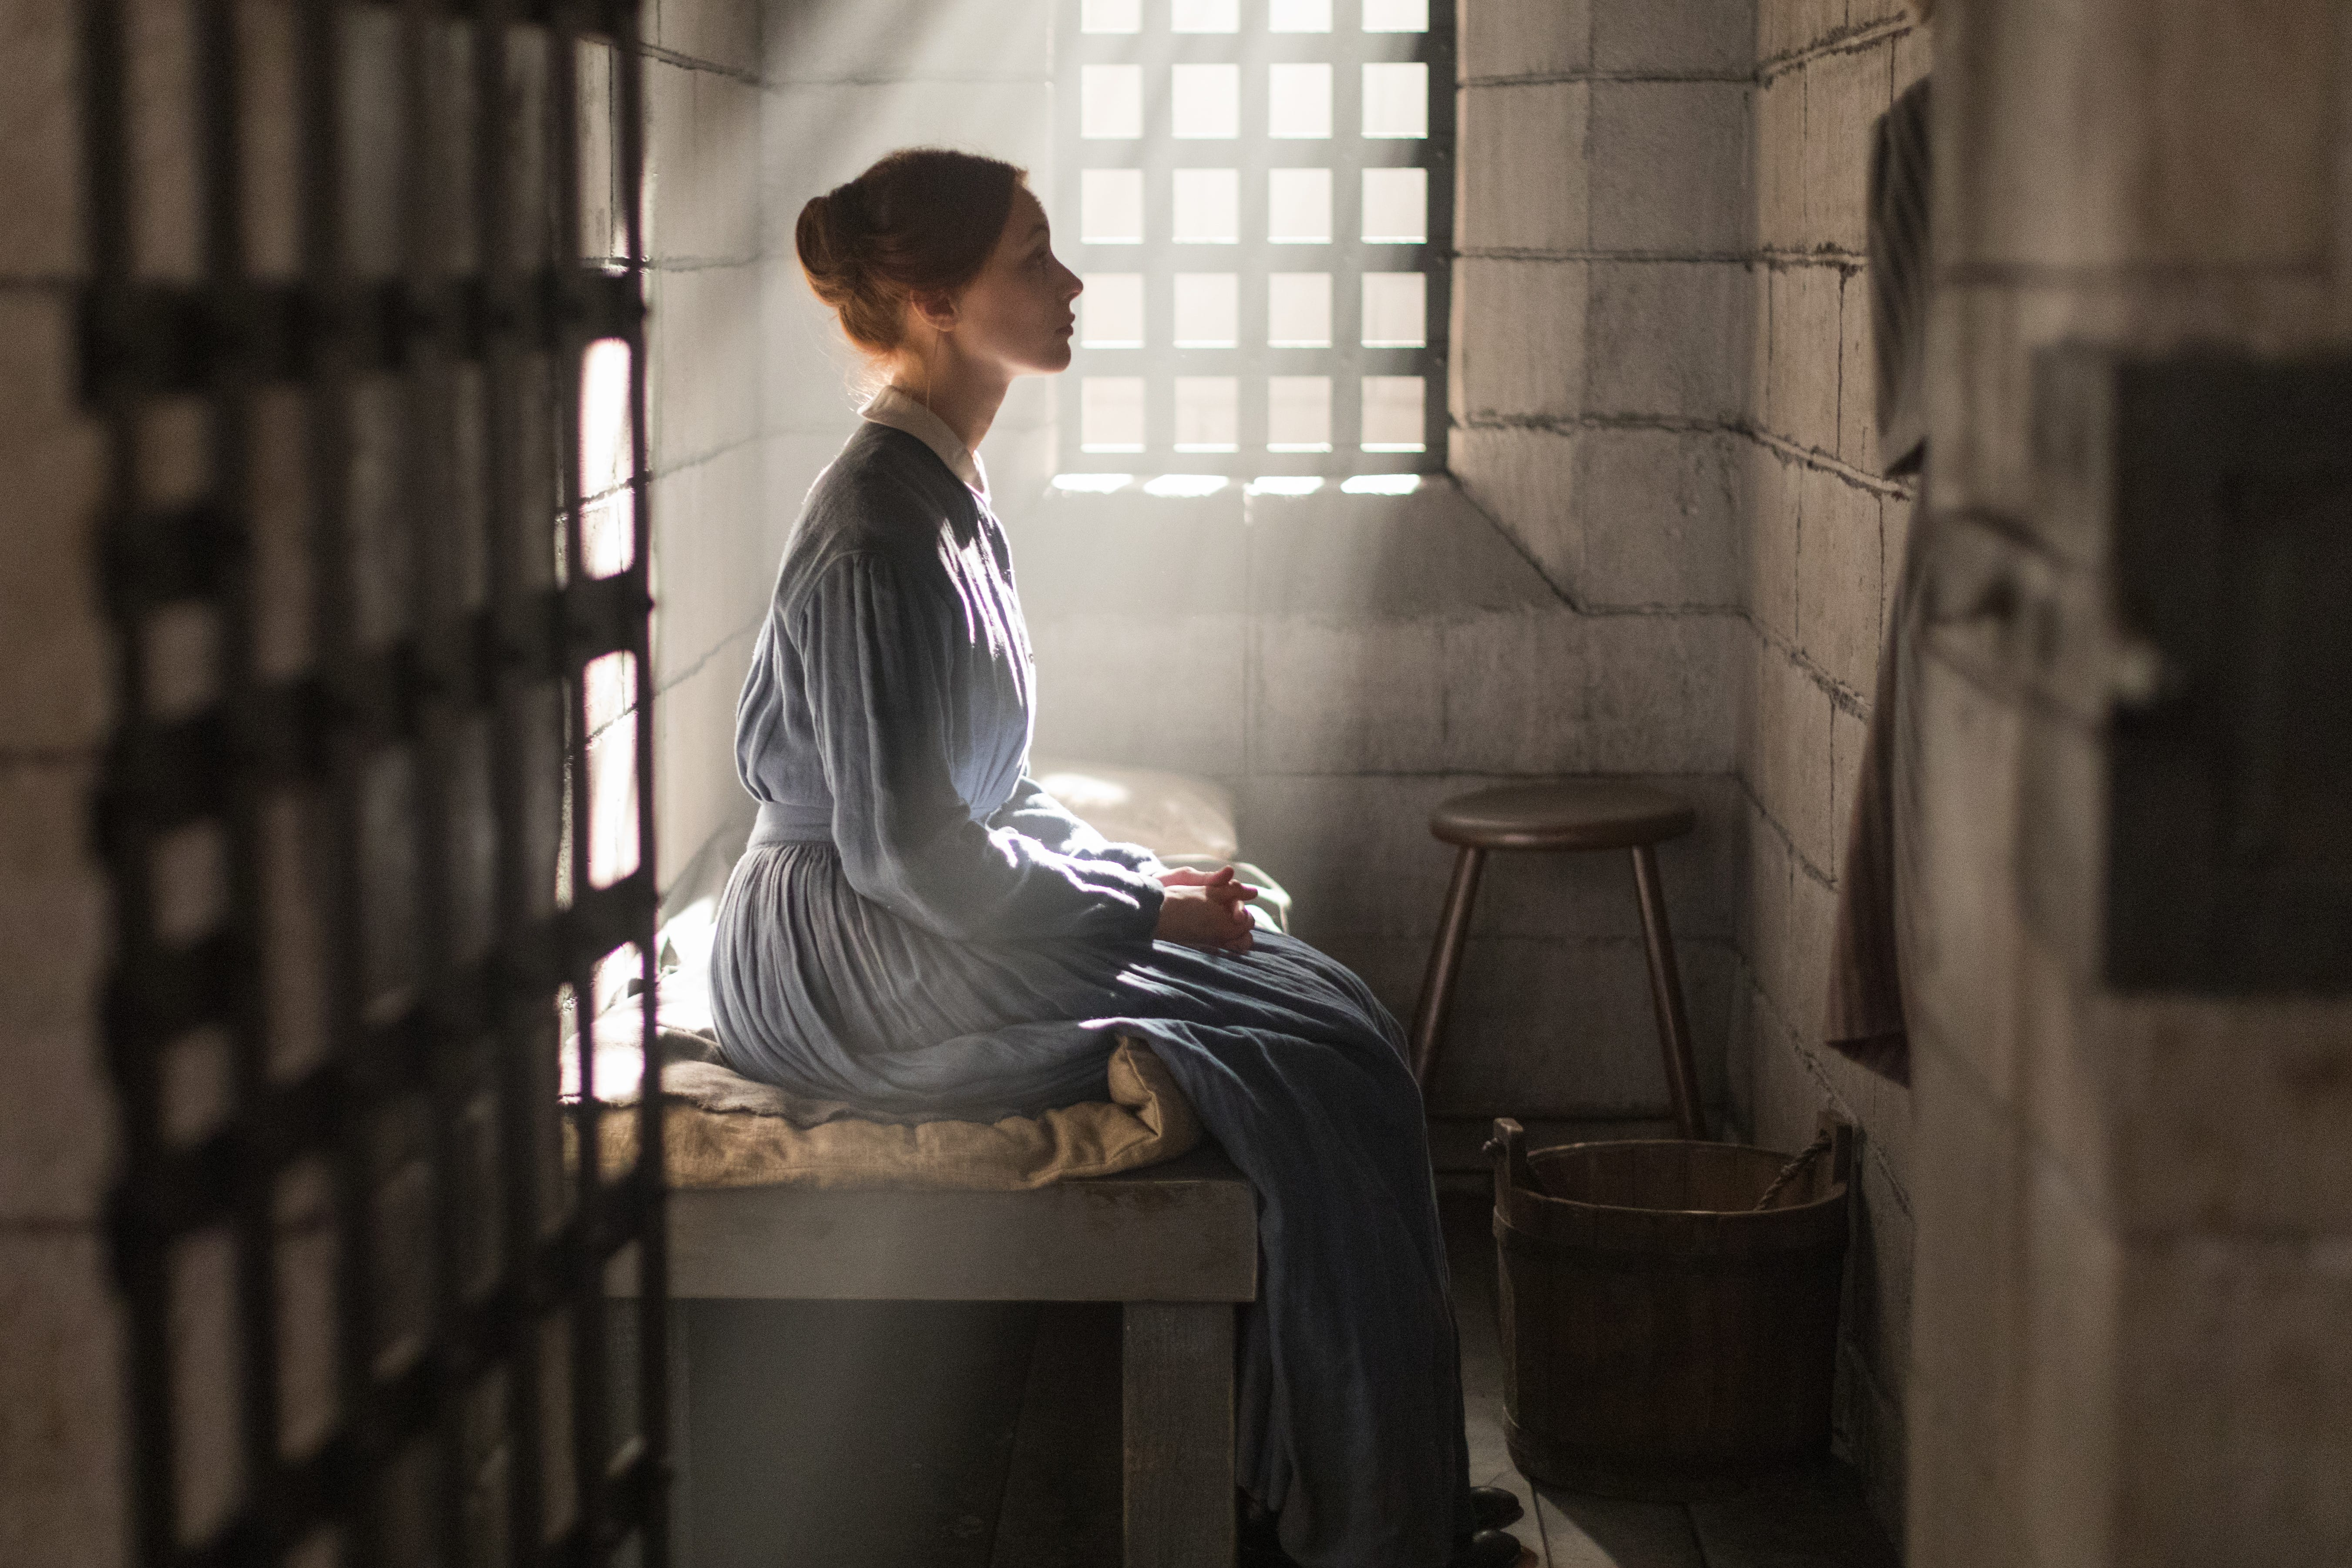 Alias Grace Characters Based On Real People True Events